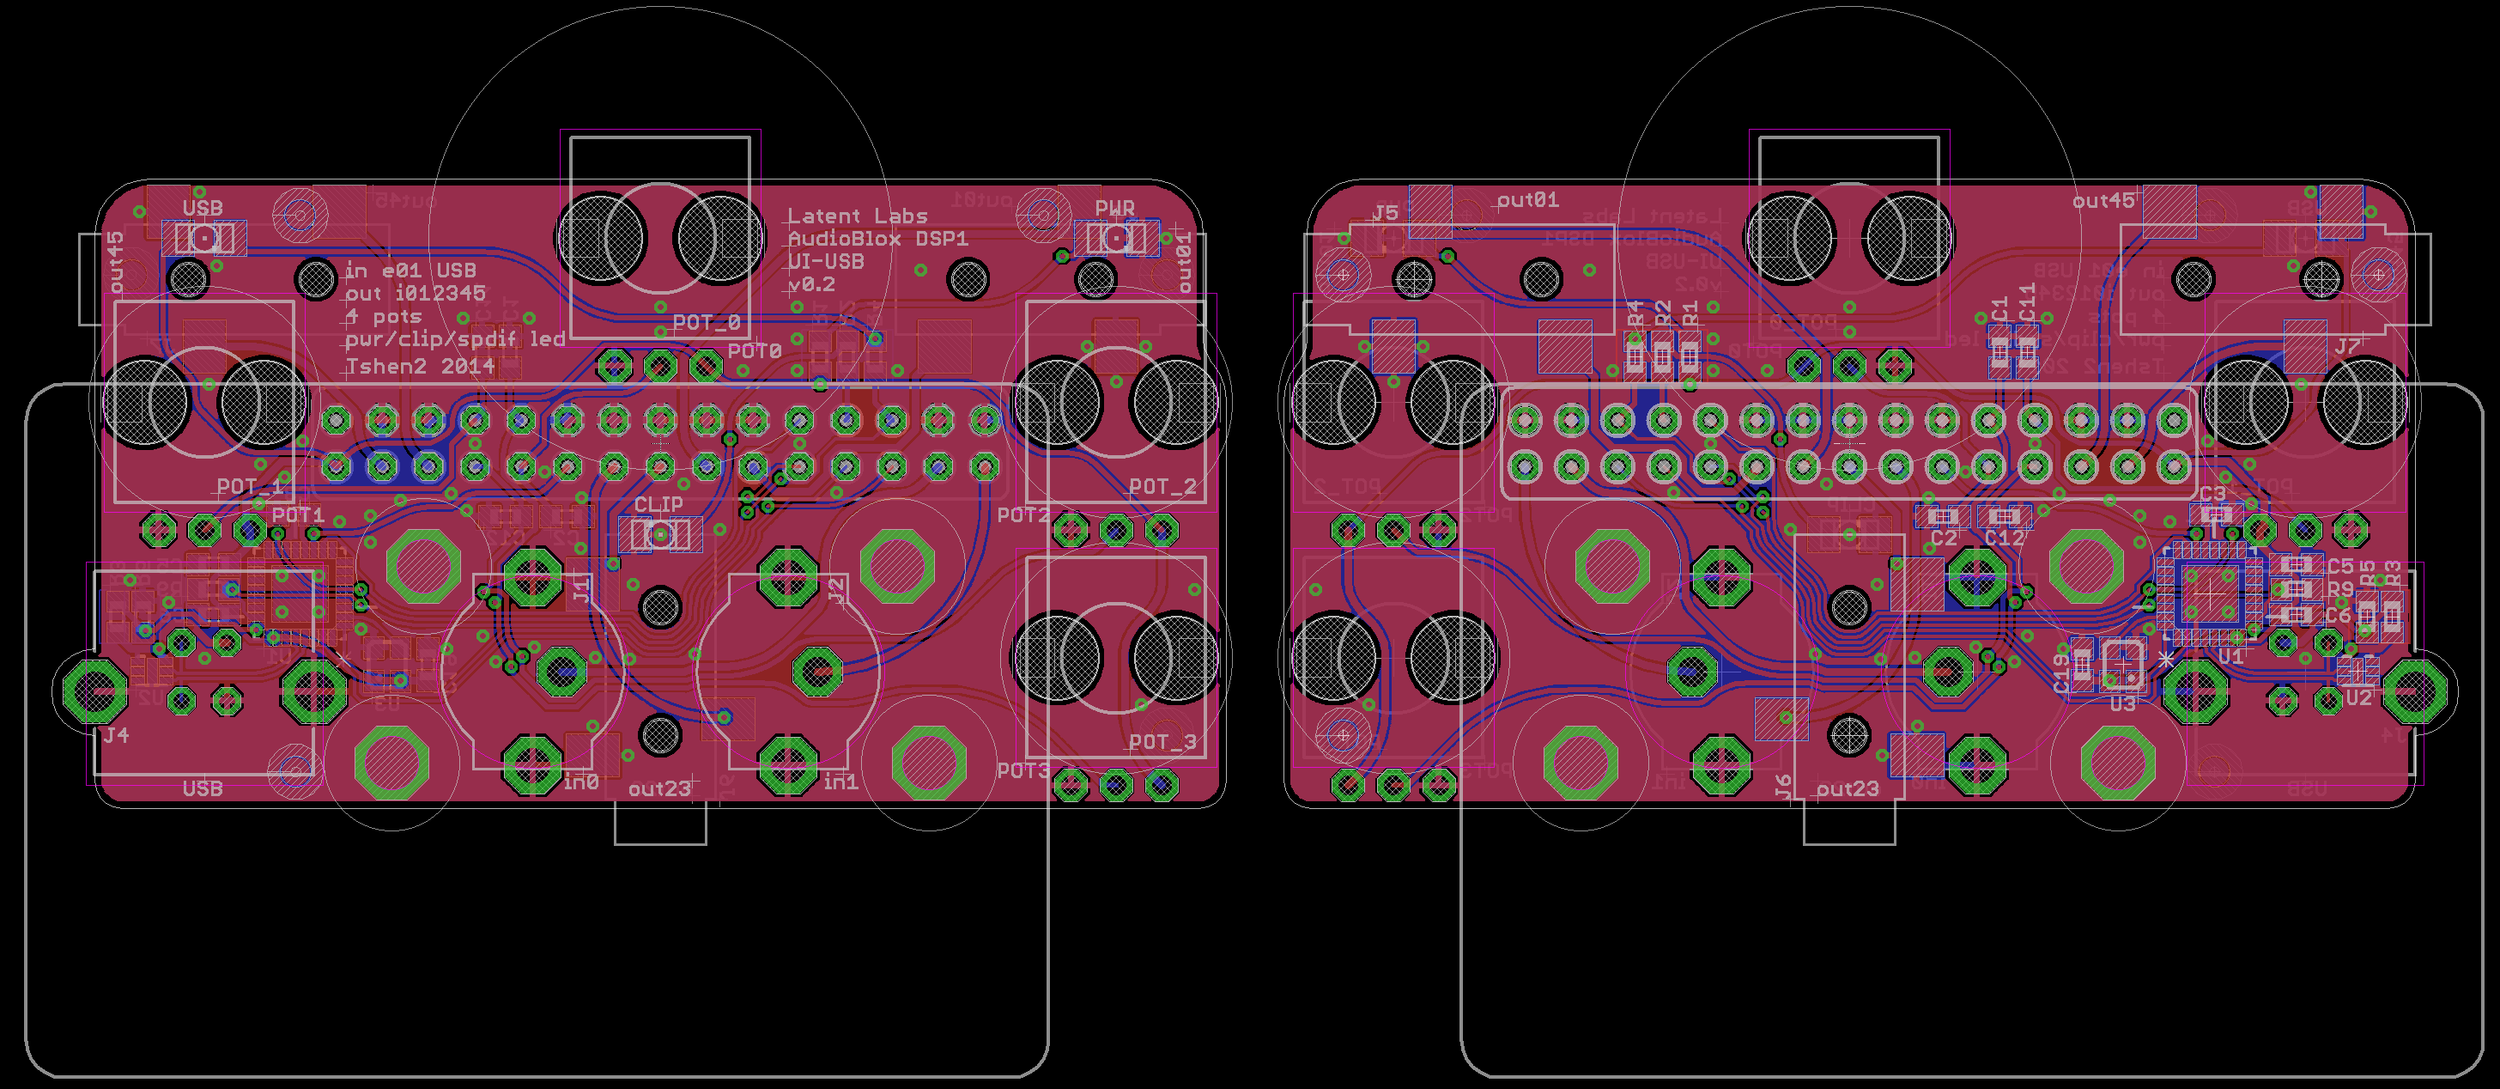 PCB layout - front (left) & back (right).